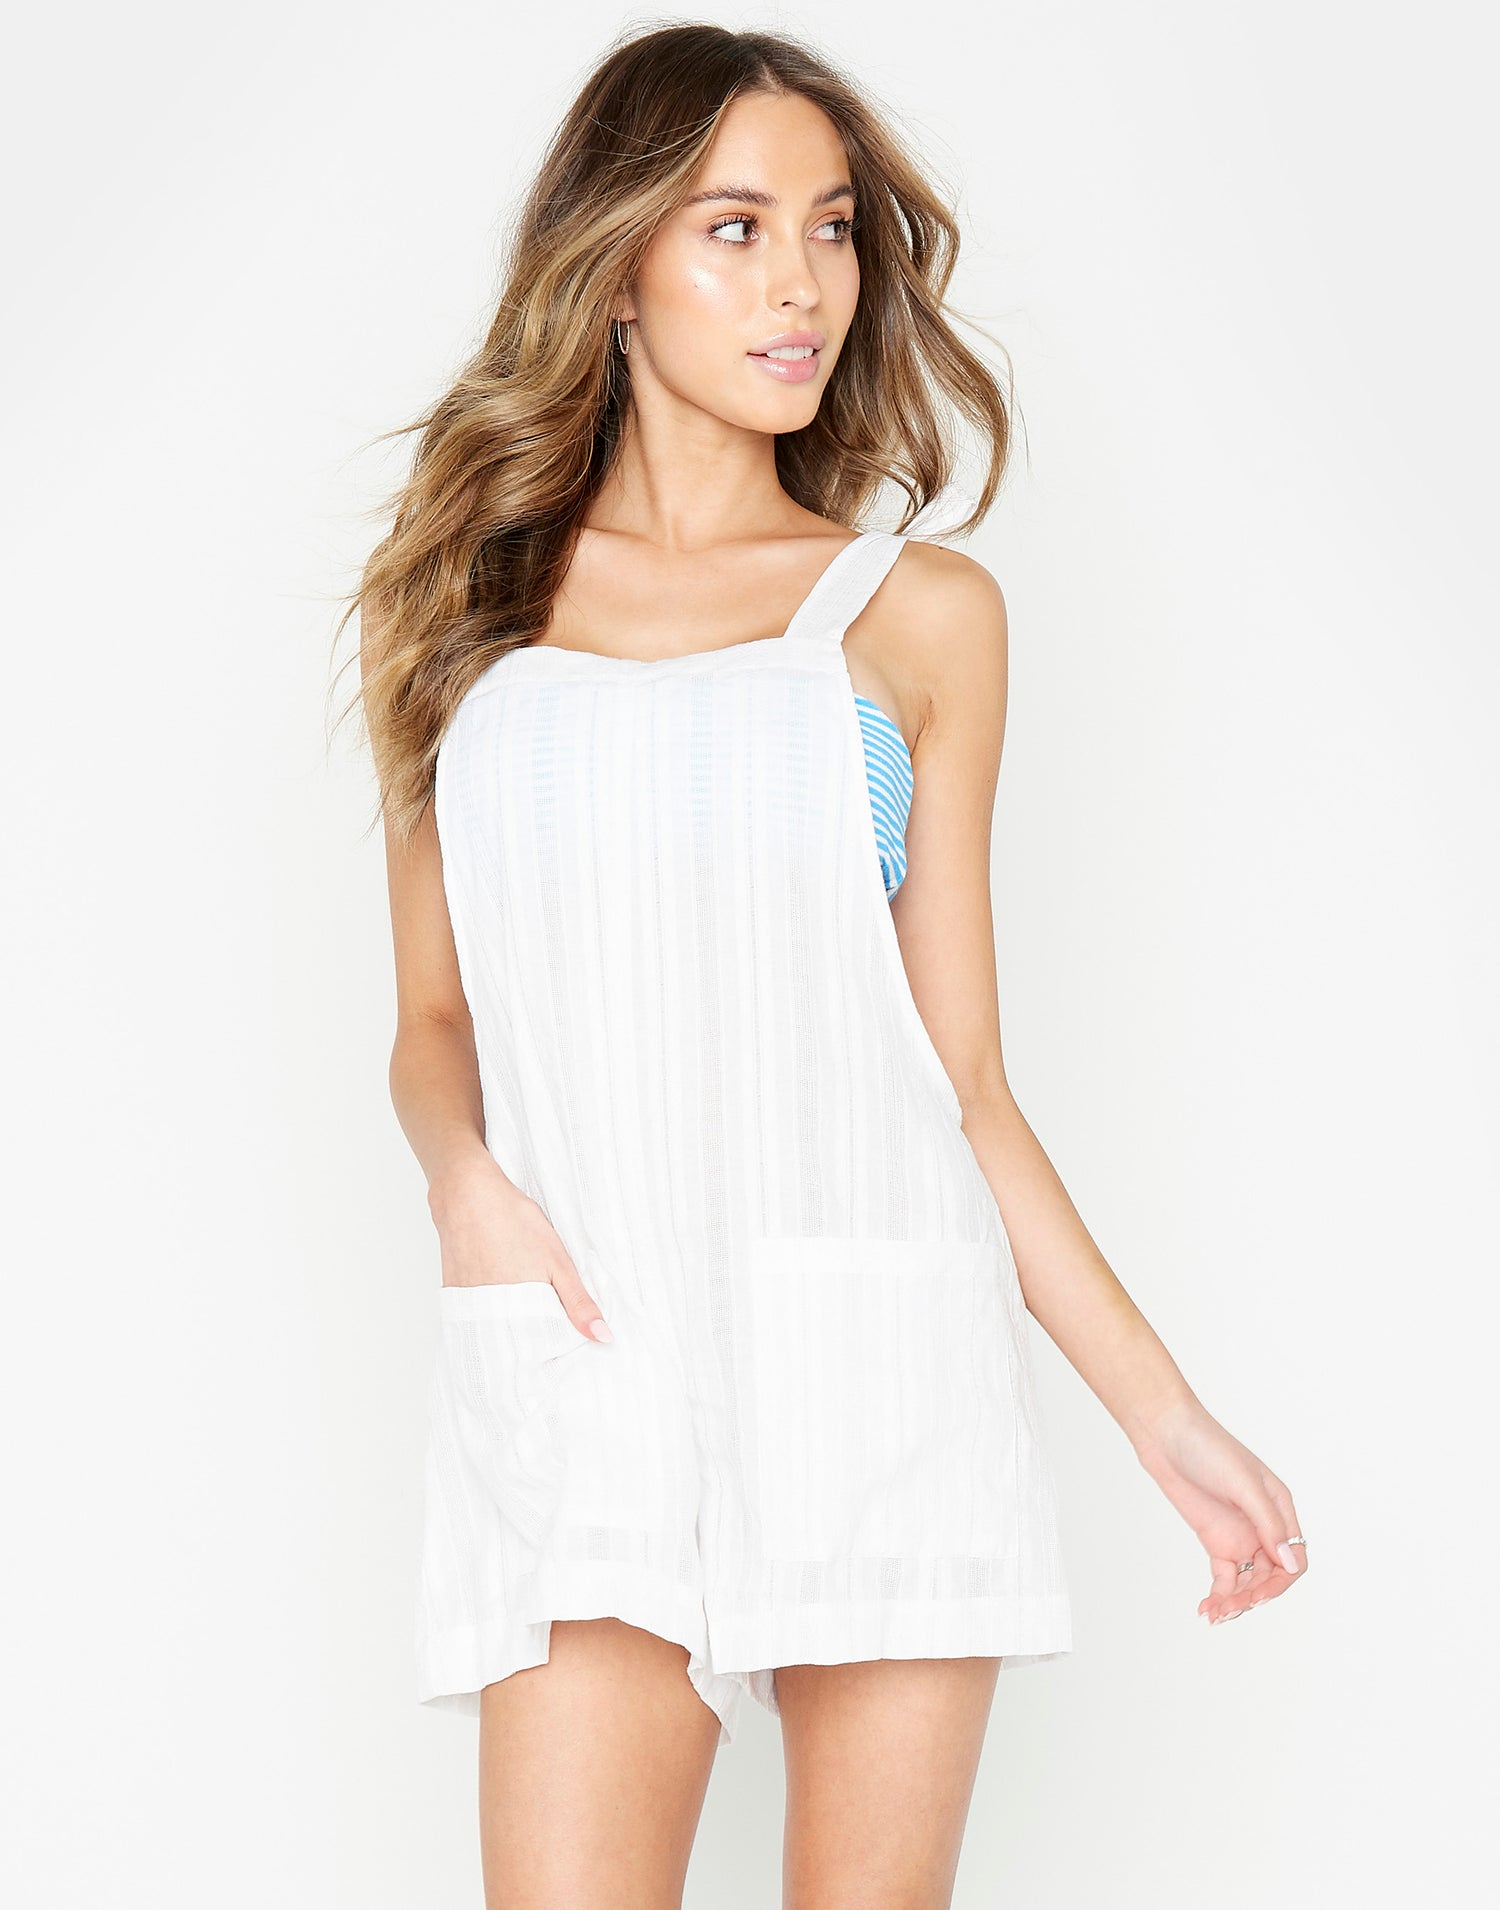 Sunny Romper Cover Up in White - front view